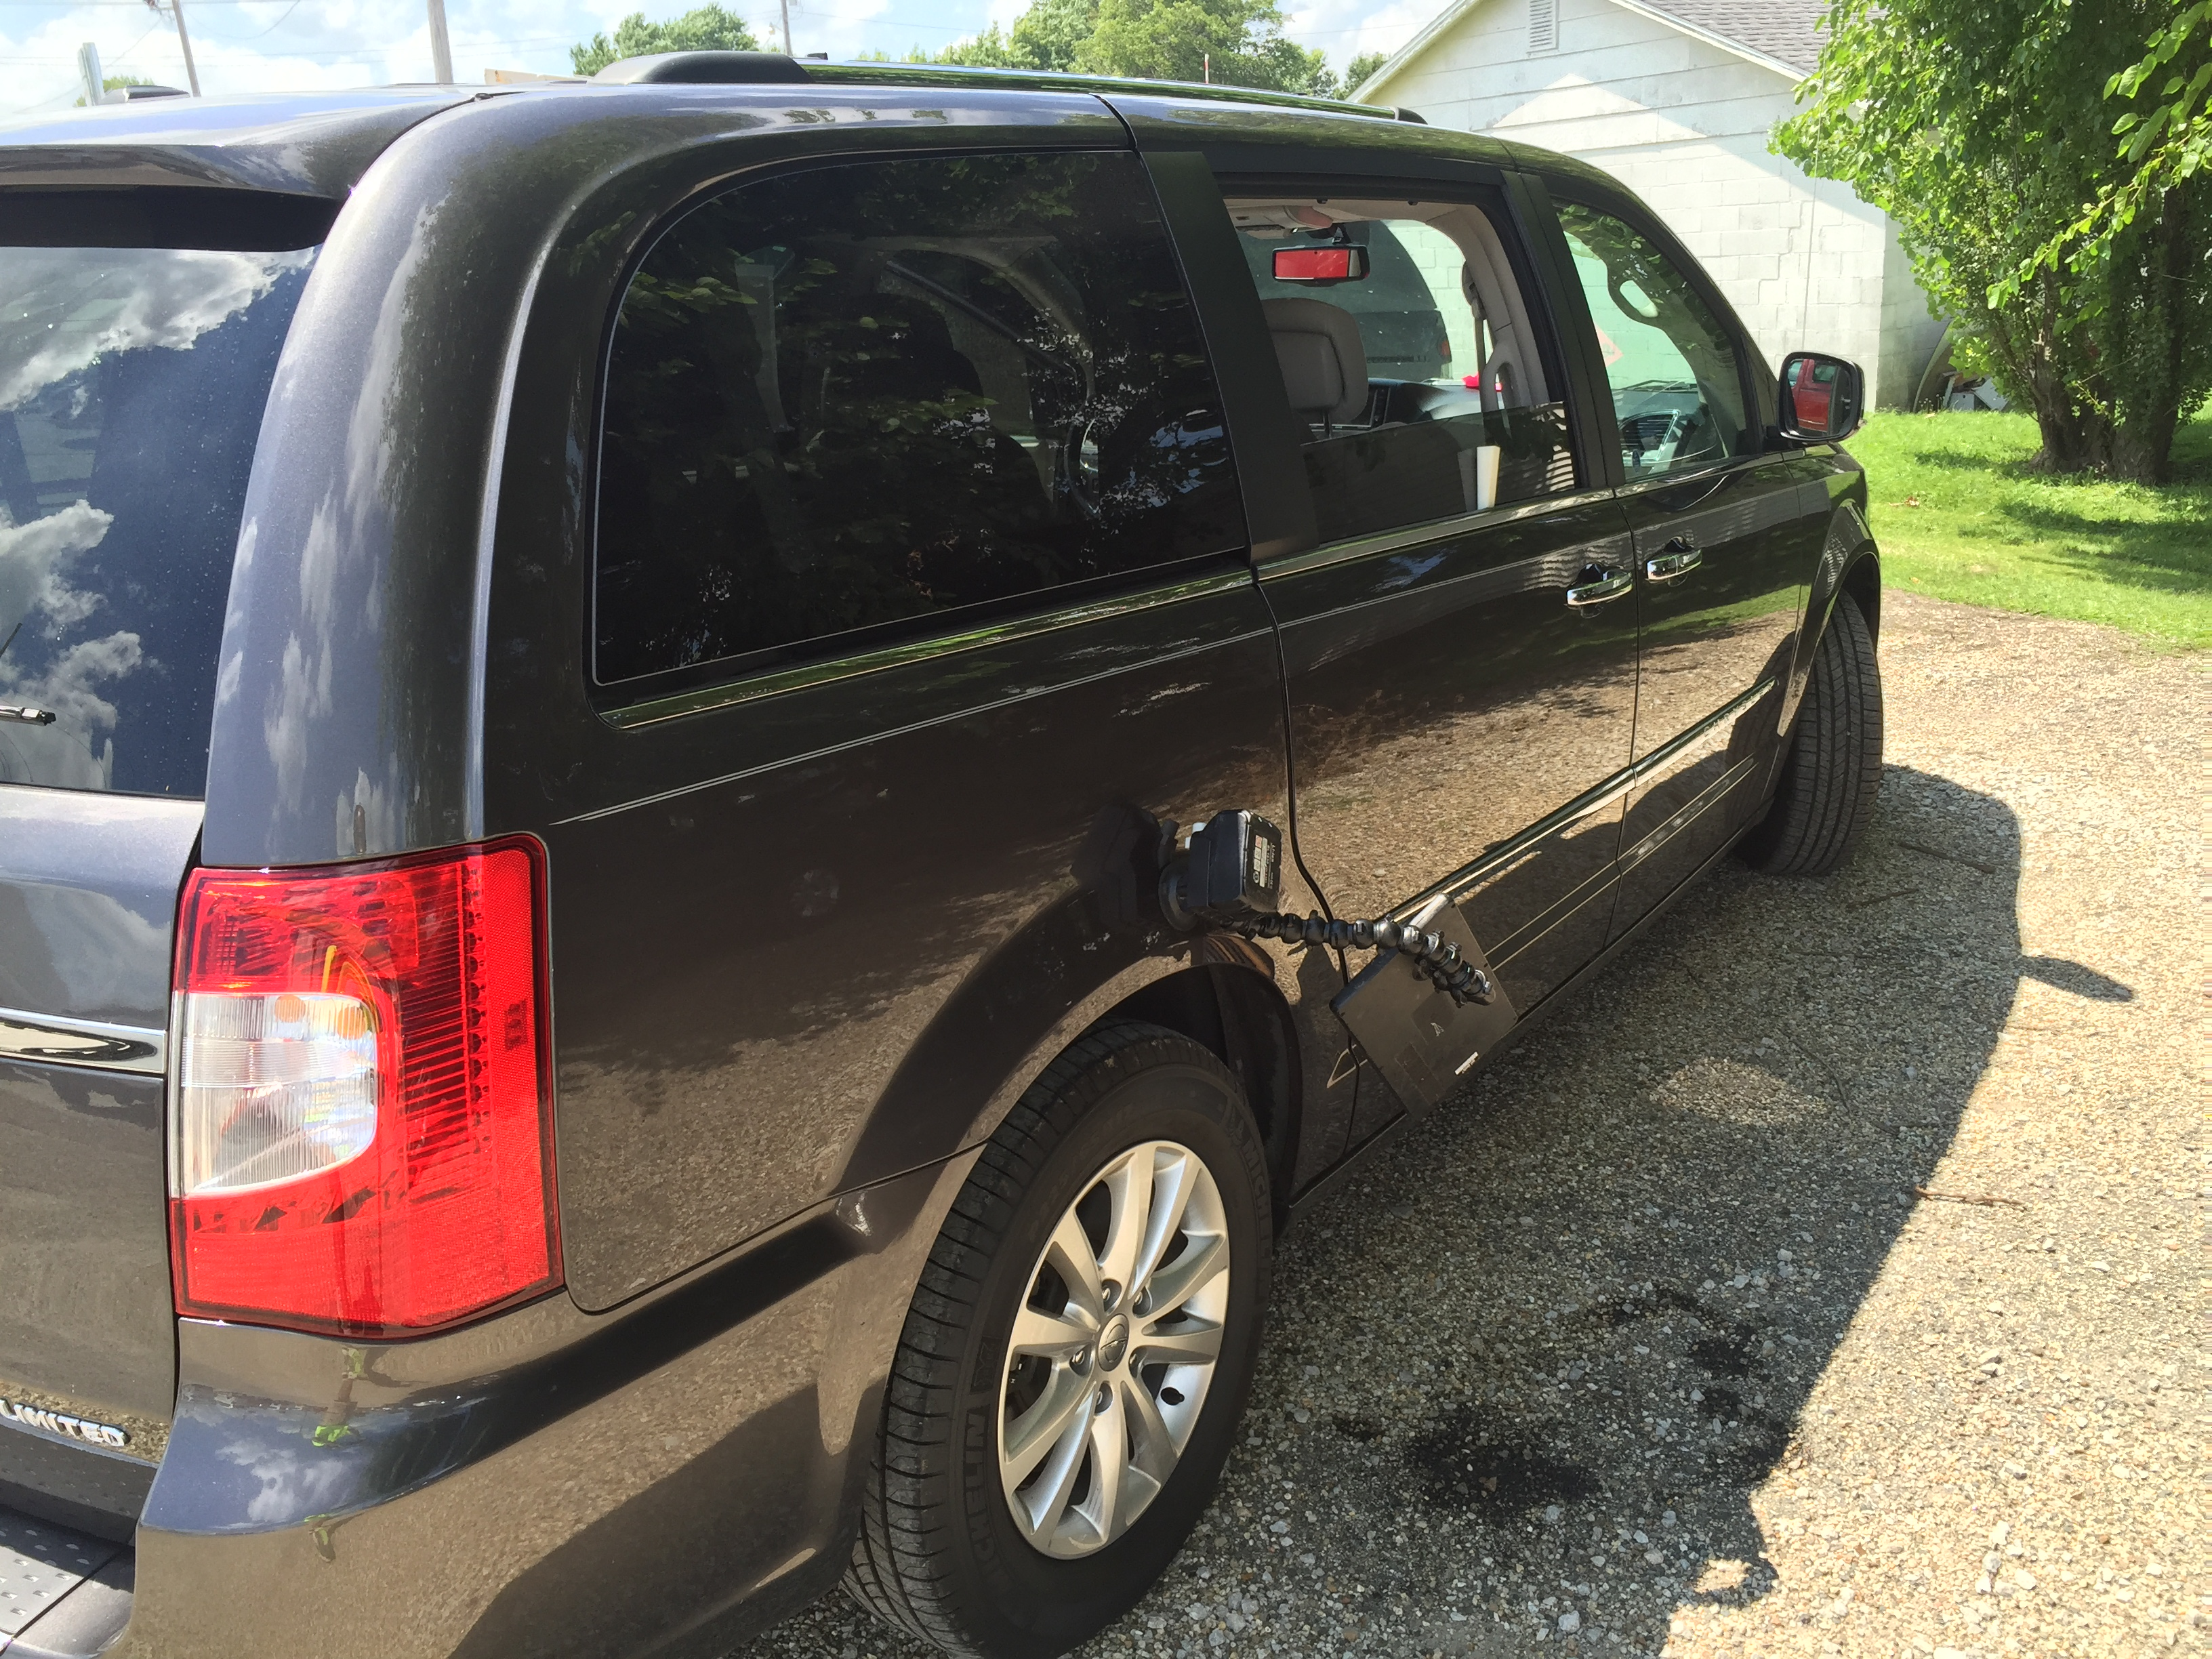 Springfield, IL Dent Repair, 2015 Chrysler Town & Country Sliding door, paintless dent Repair, http://217dent.com